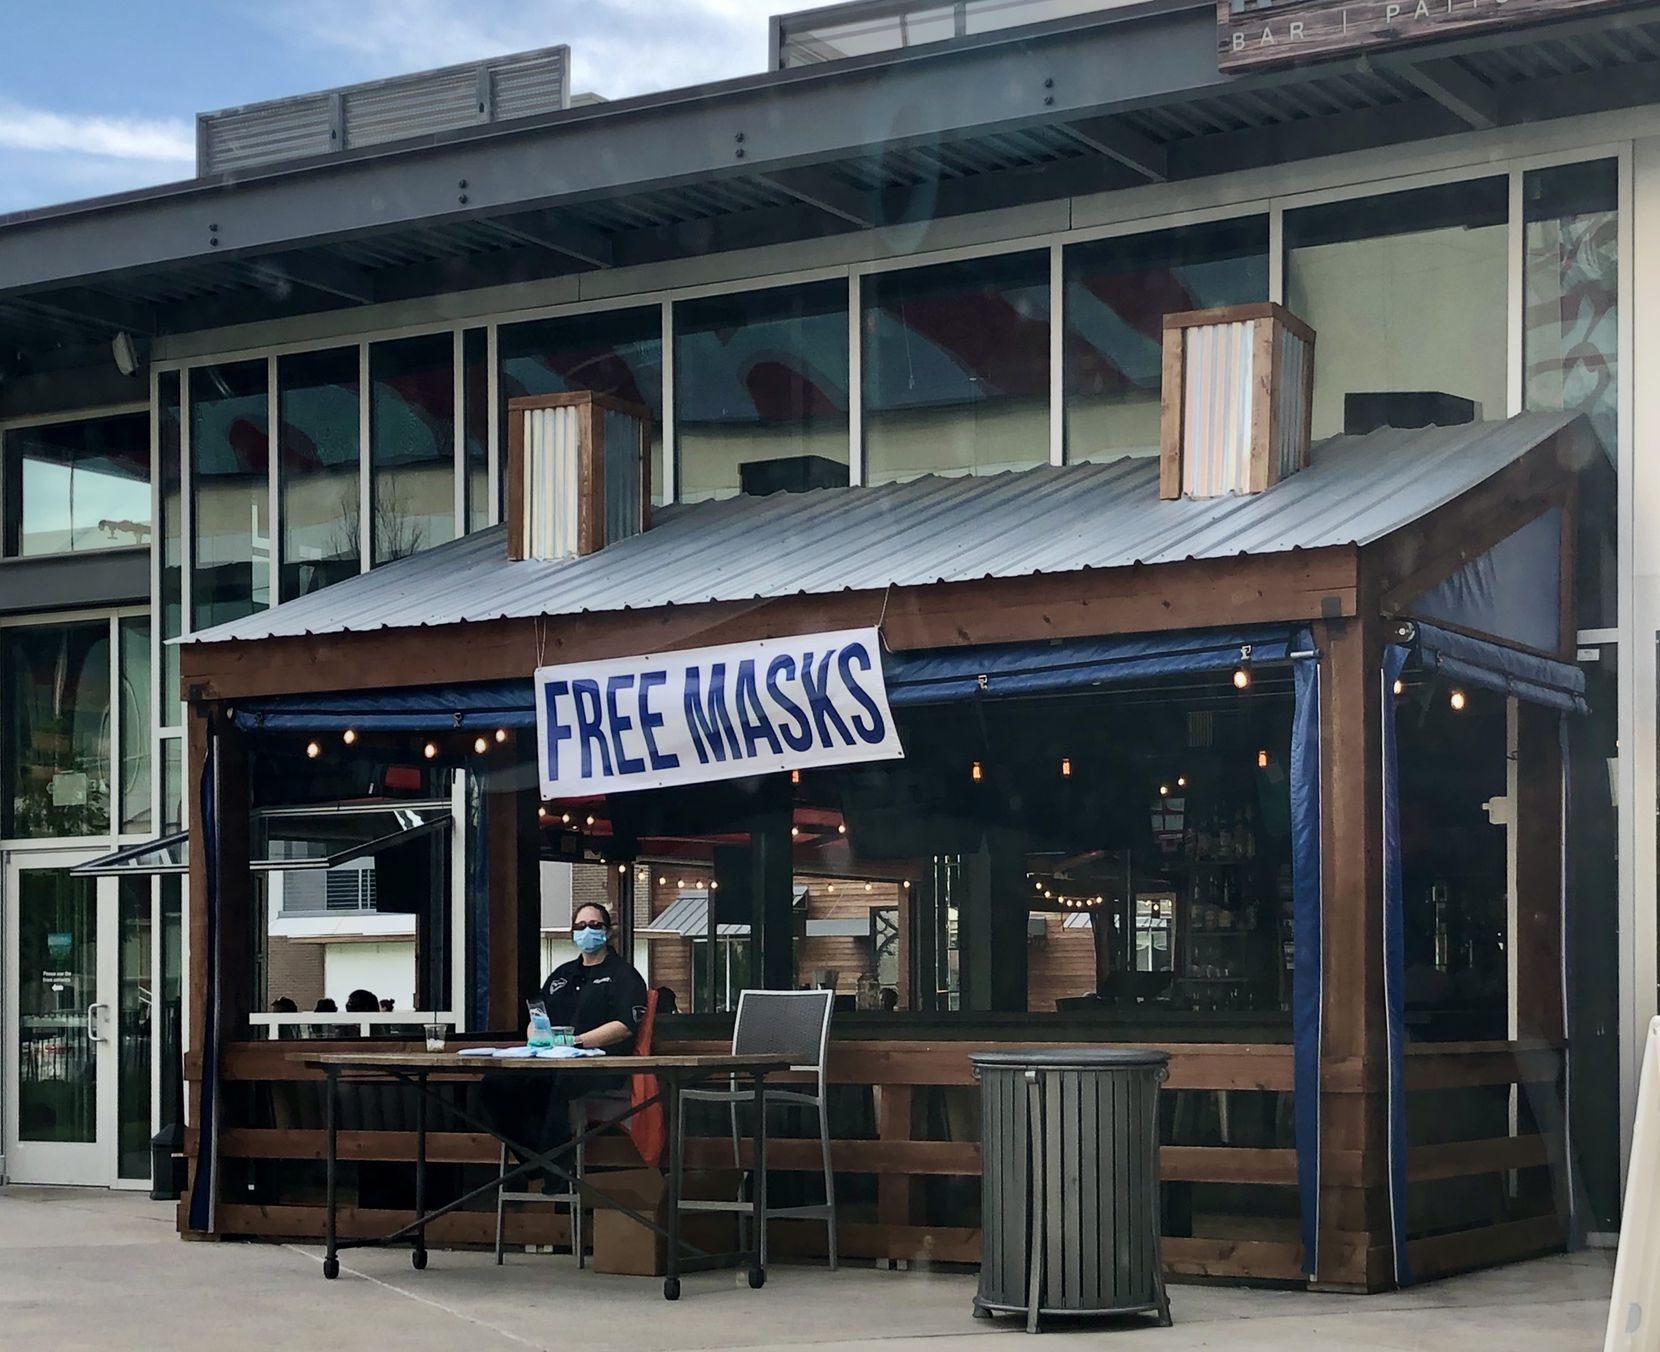 A 'free masks' sign at the Reservoir bar and restaurant in Las Colinas on May 1, 2020.